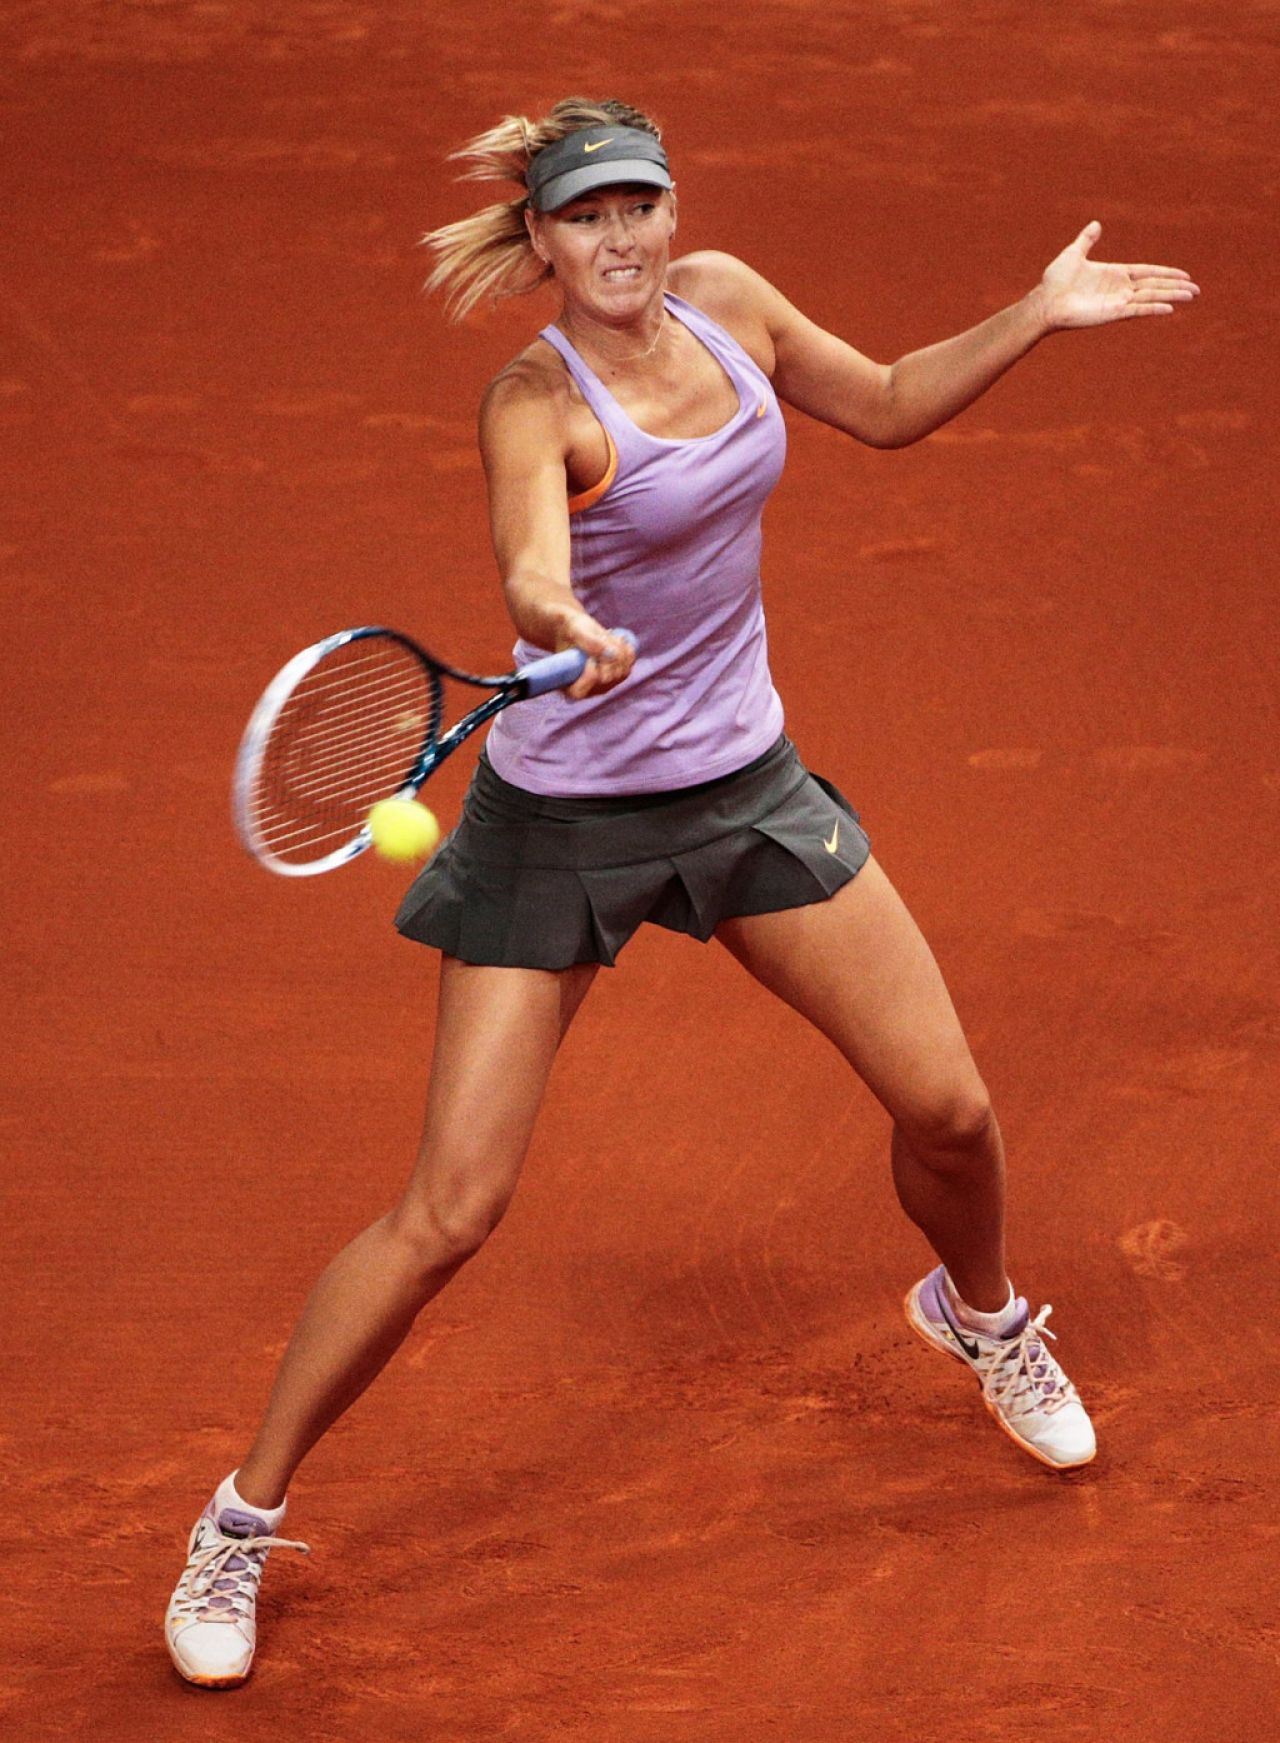 Maria Sharapova - Porsche Tennis Grand Prix 2014 - Day 2 in Stuttgart, Germany